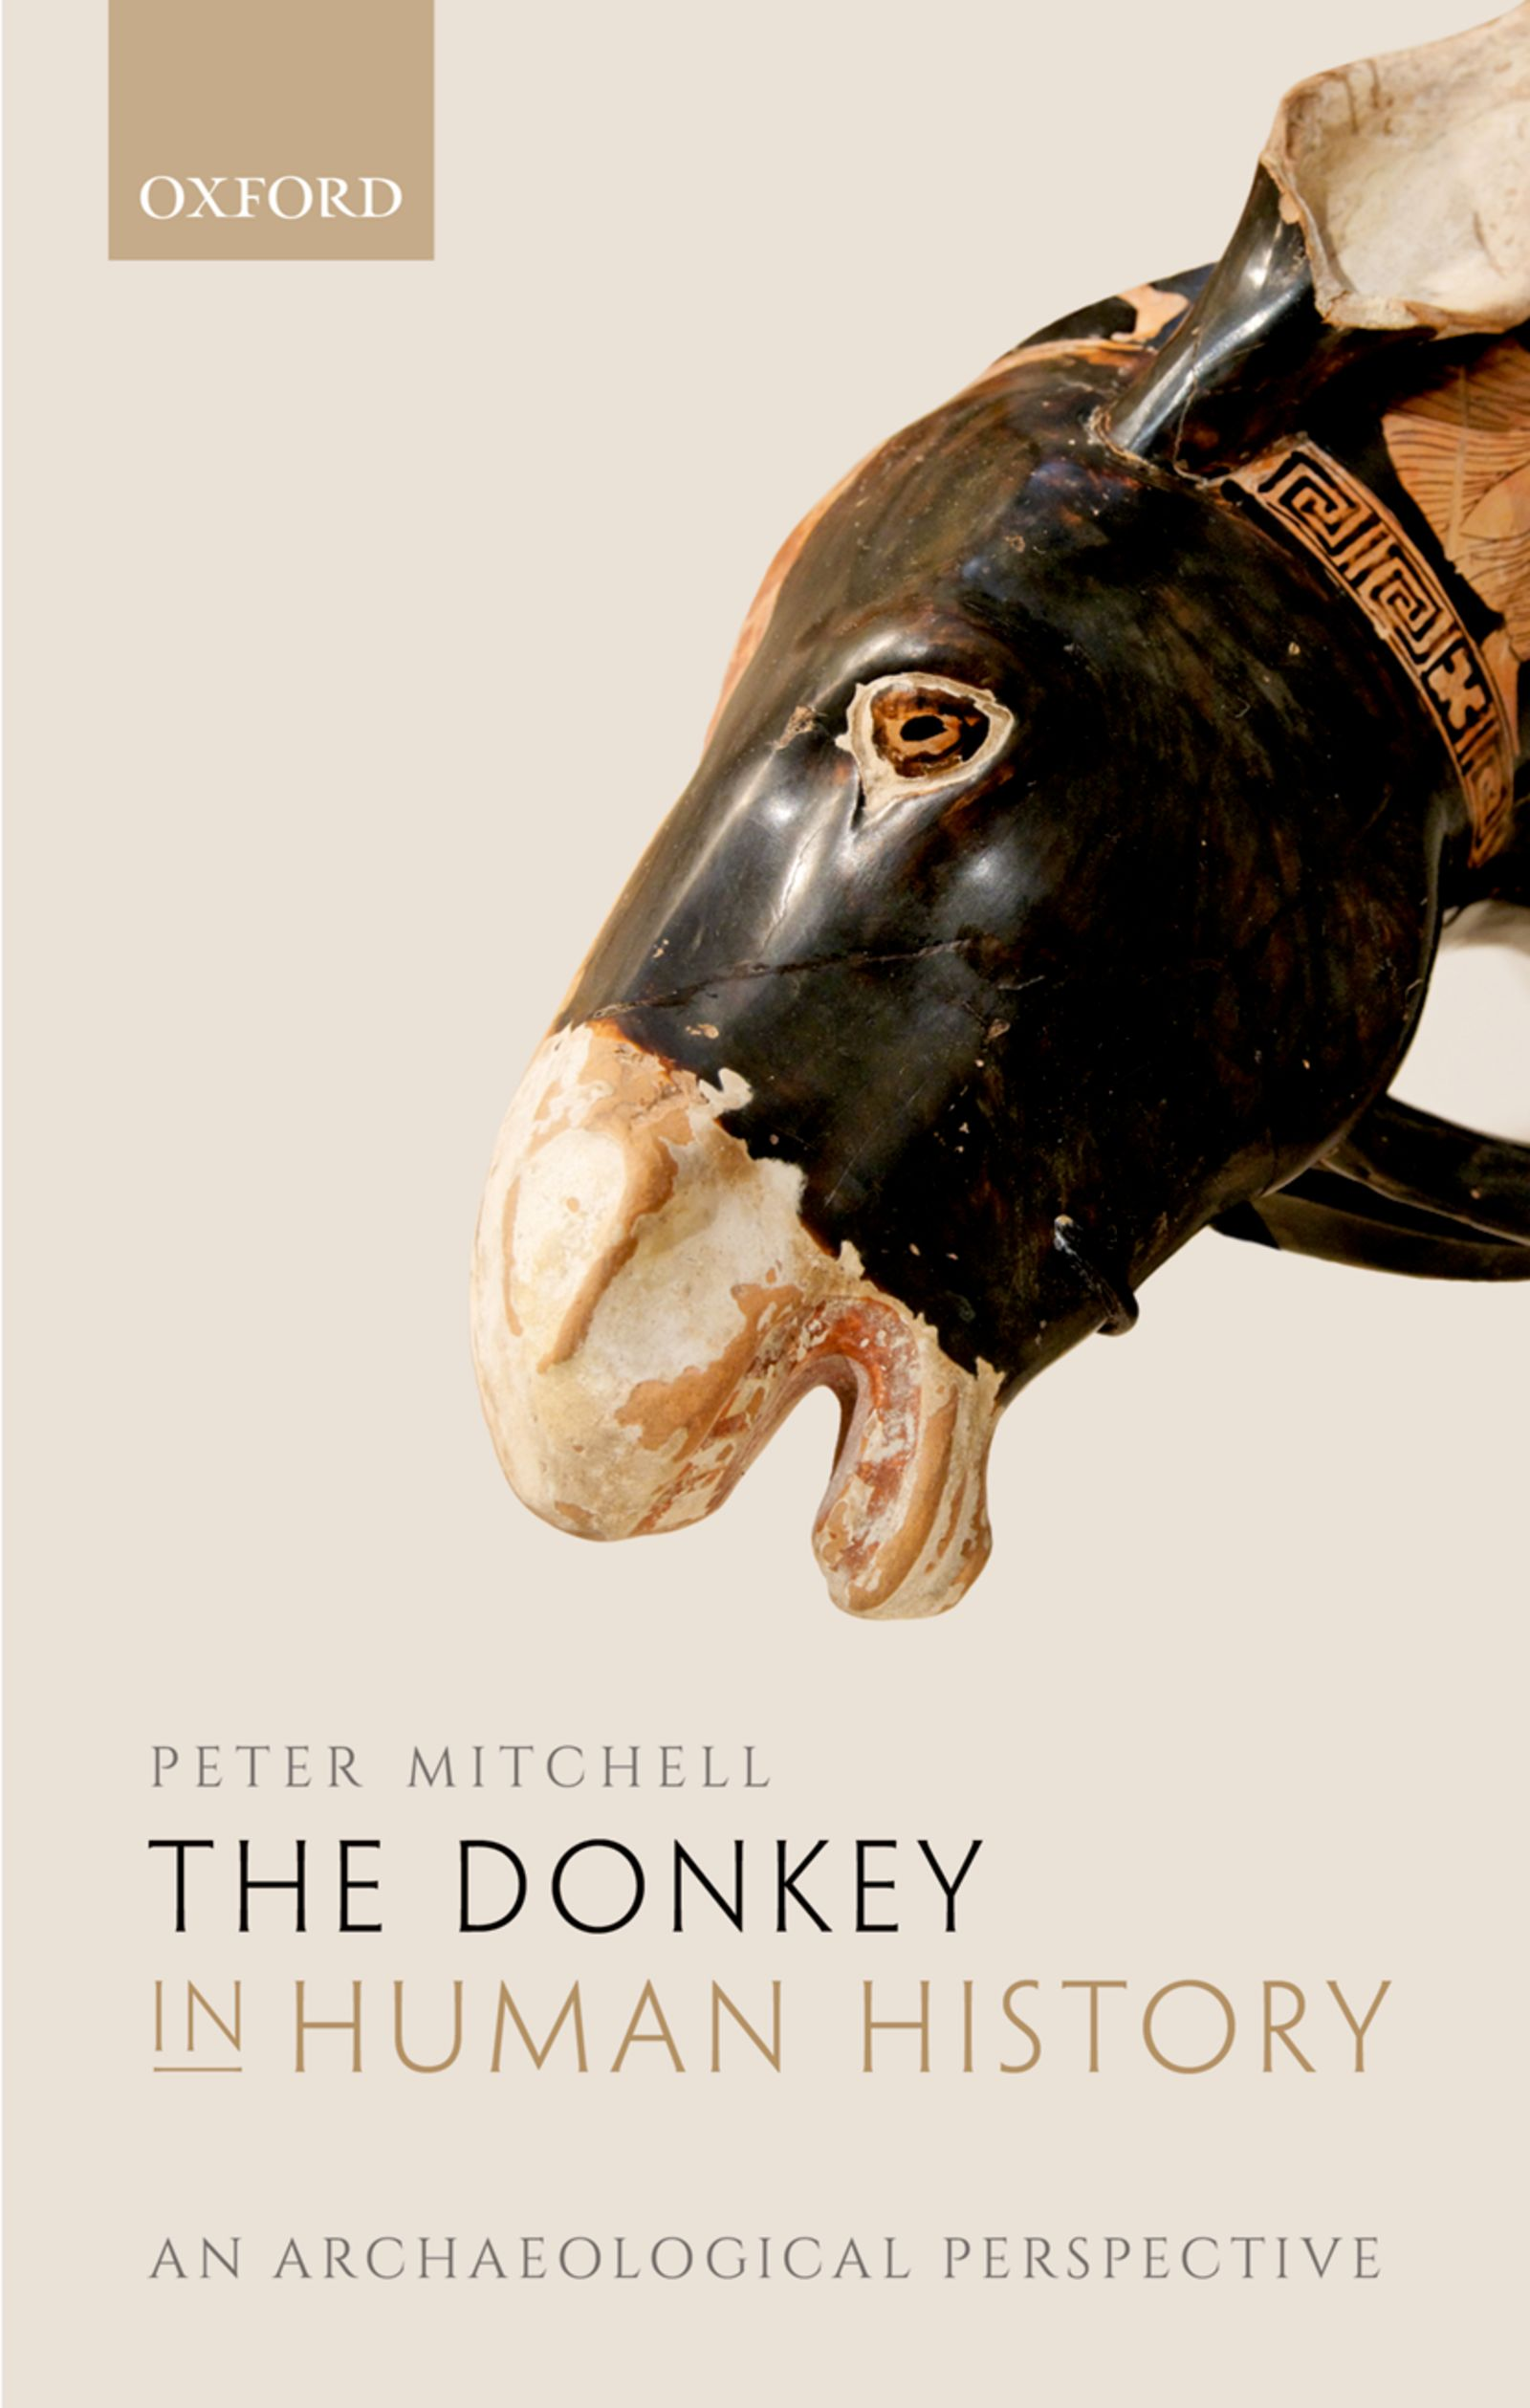 The Donkey in Human HistoryAn Archaeological Perspective